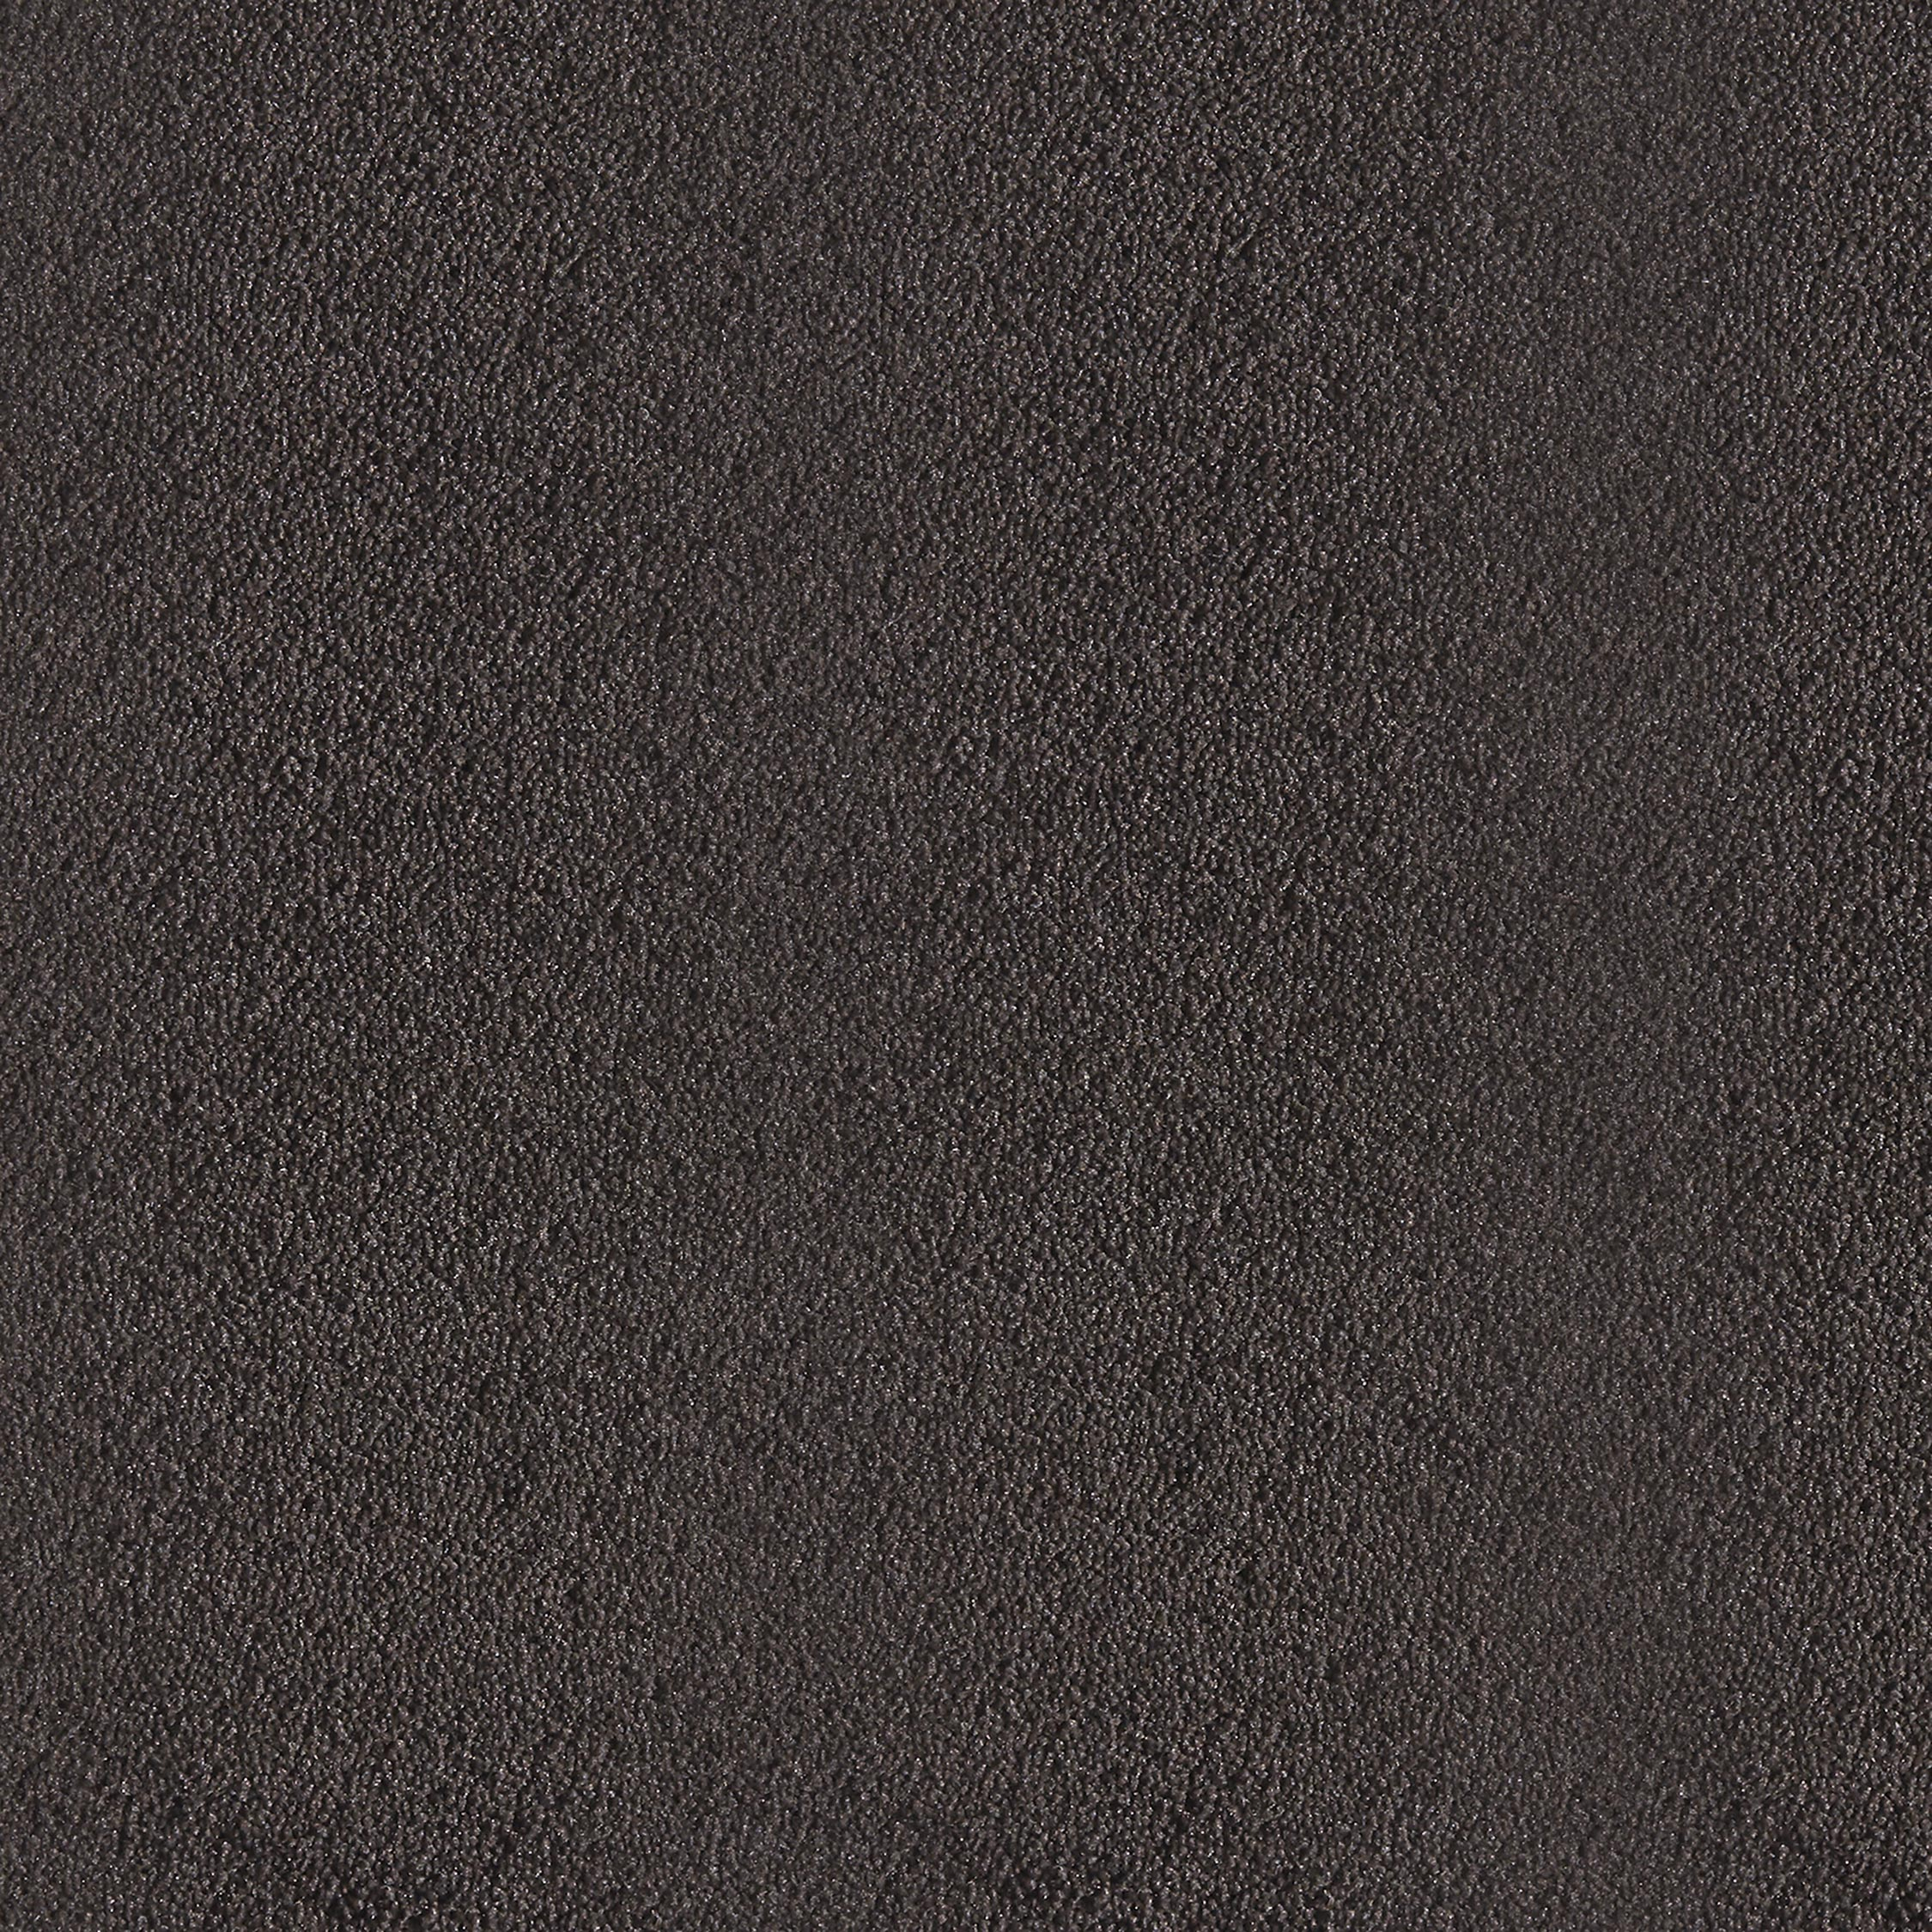 Texture 2000 wt  chocolate